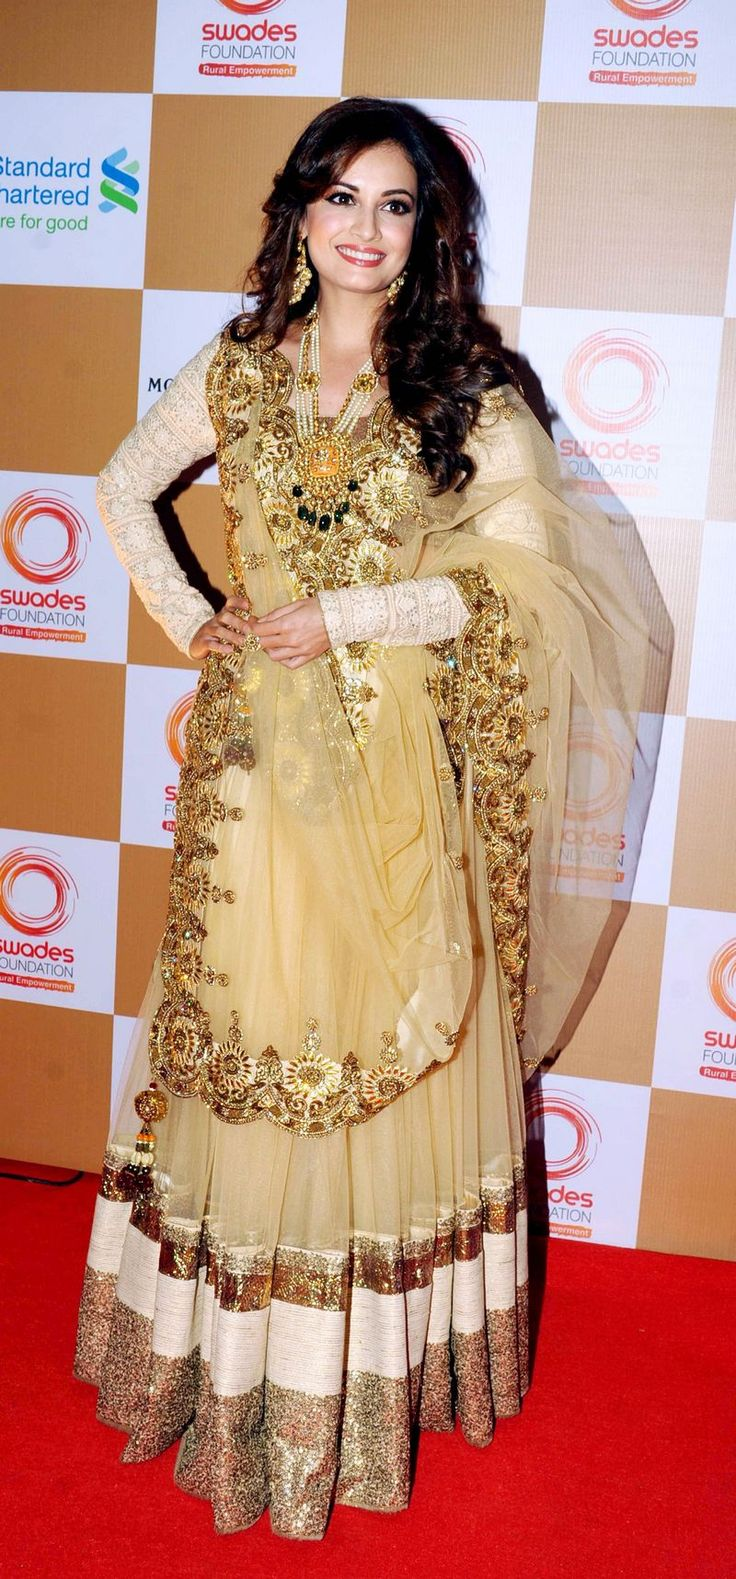 The bling on Dia Mirza's outfit was blinding! At a fund raising event hosted by Swades Foundation.